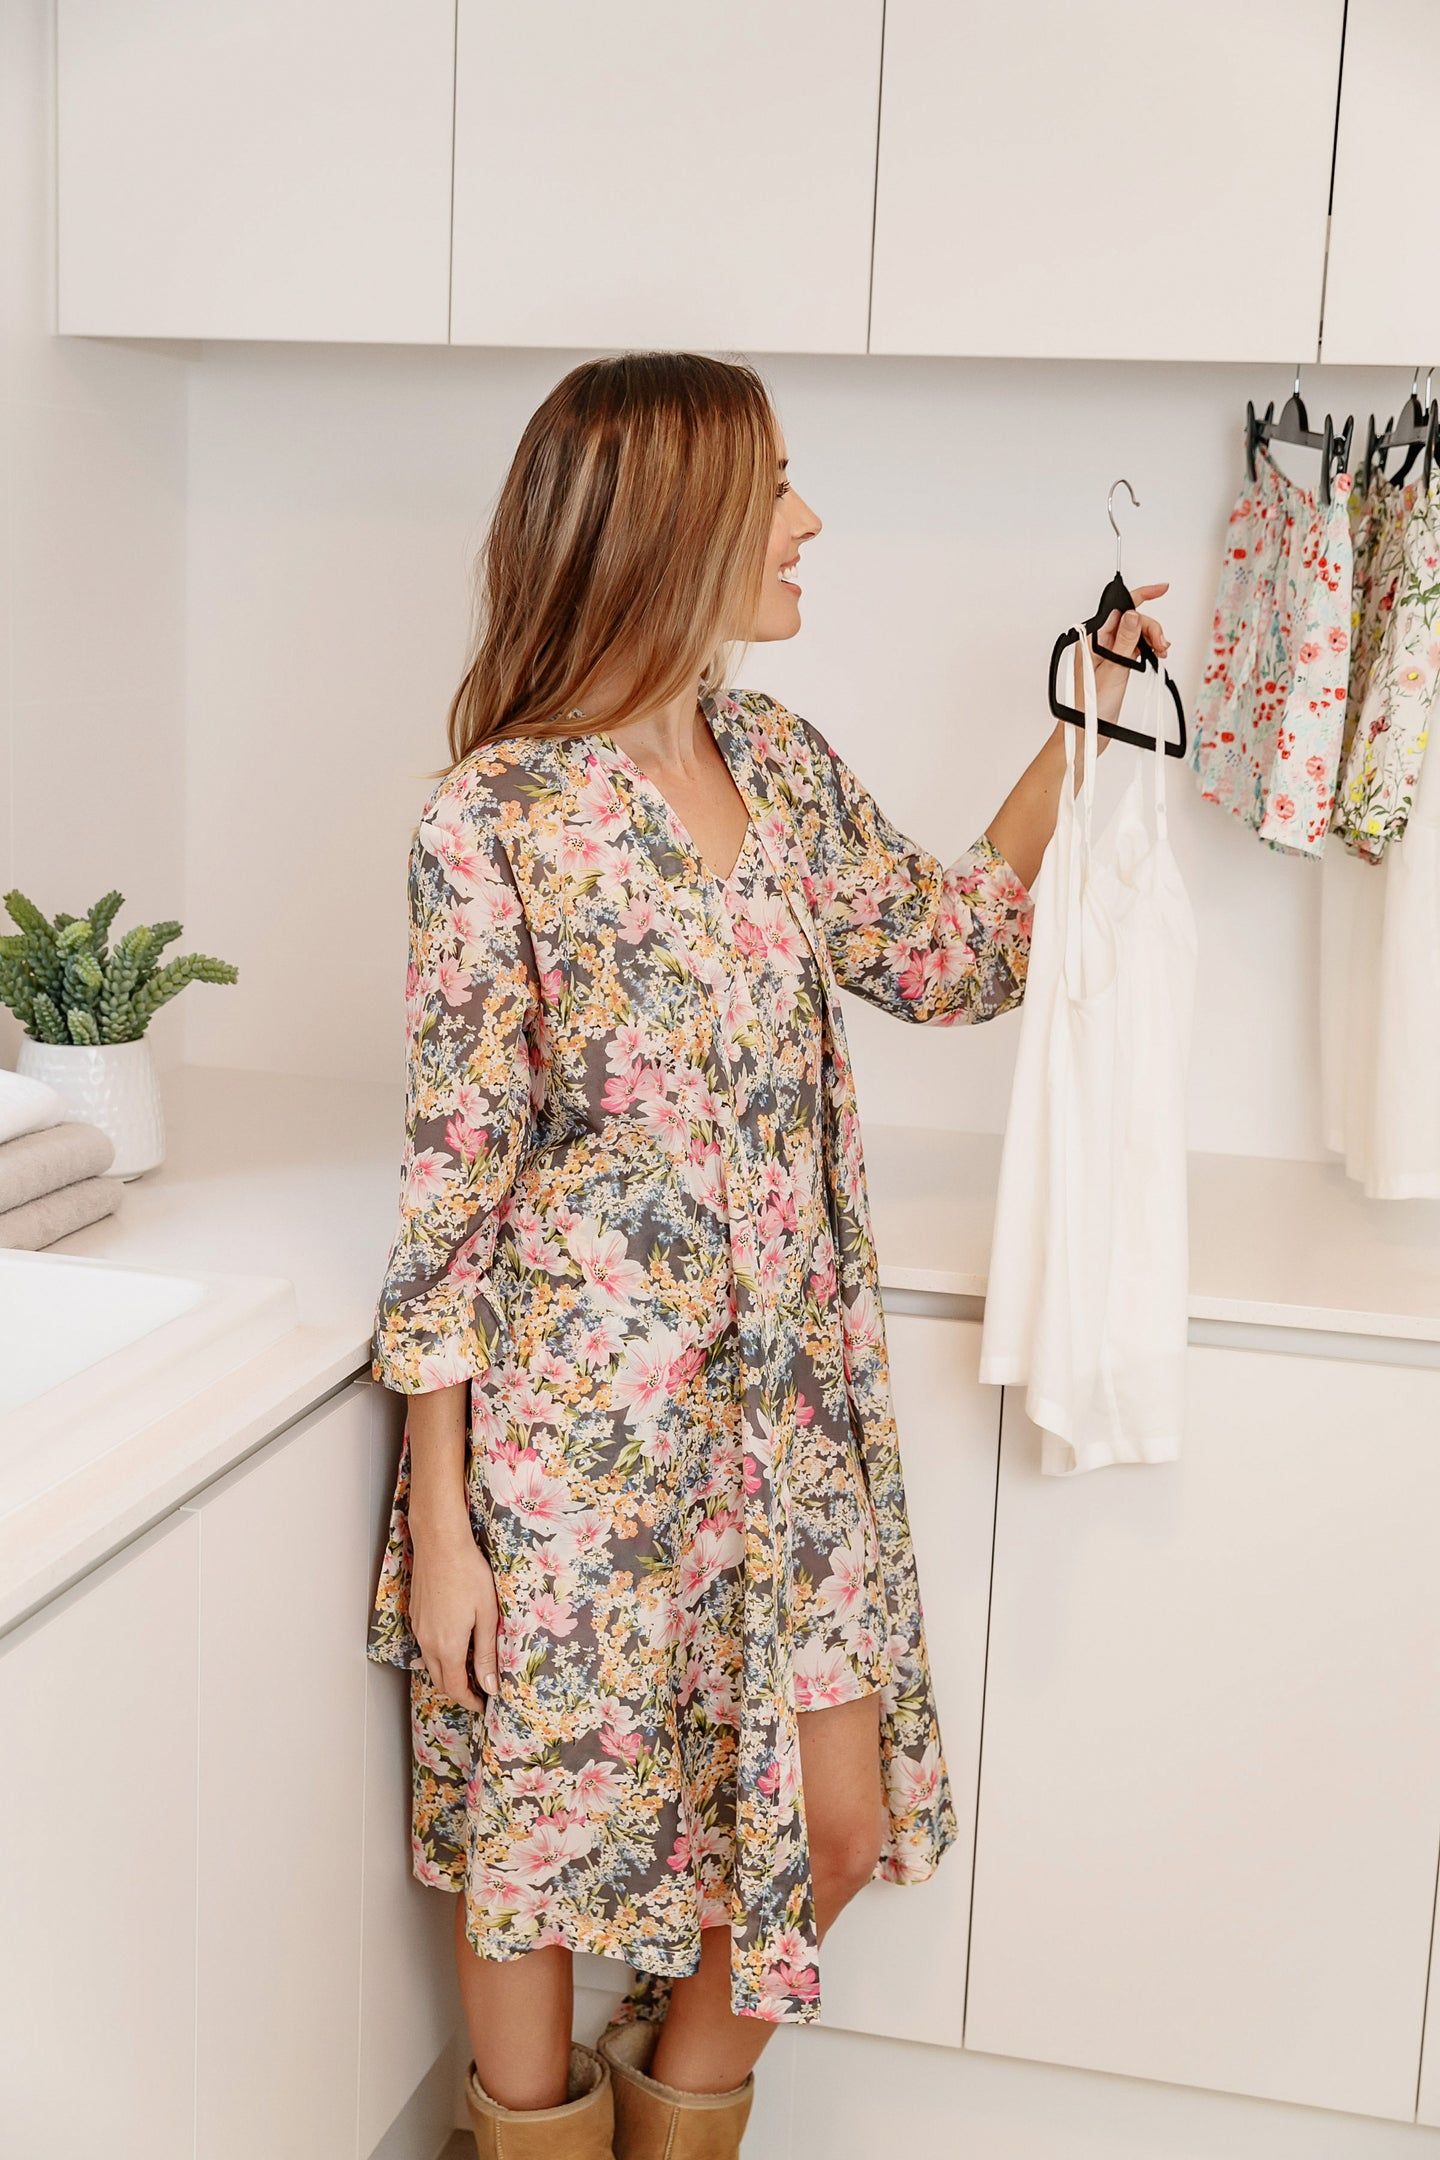 The Ava floral design cotton/silk dressing gown is soft and luxurious, with it's classic cross over style with tie waist and side pockets.